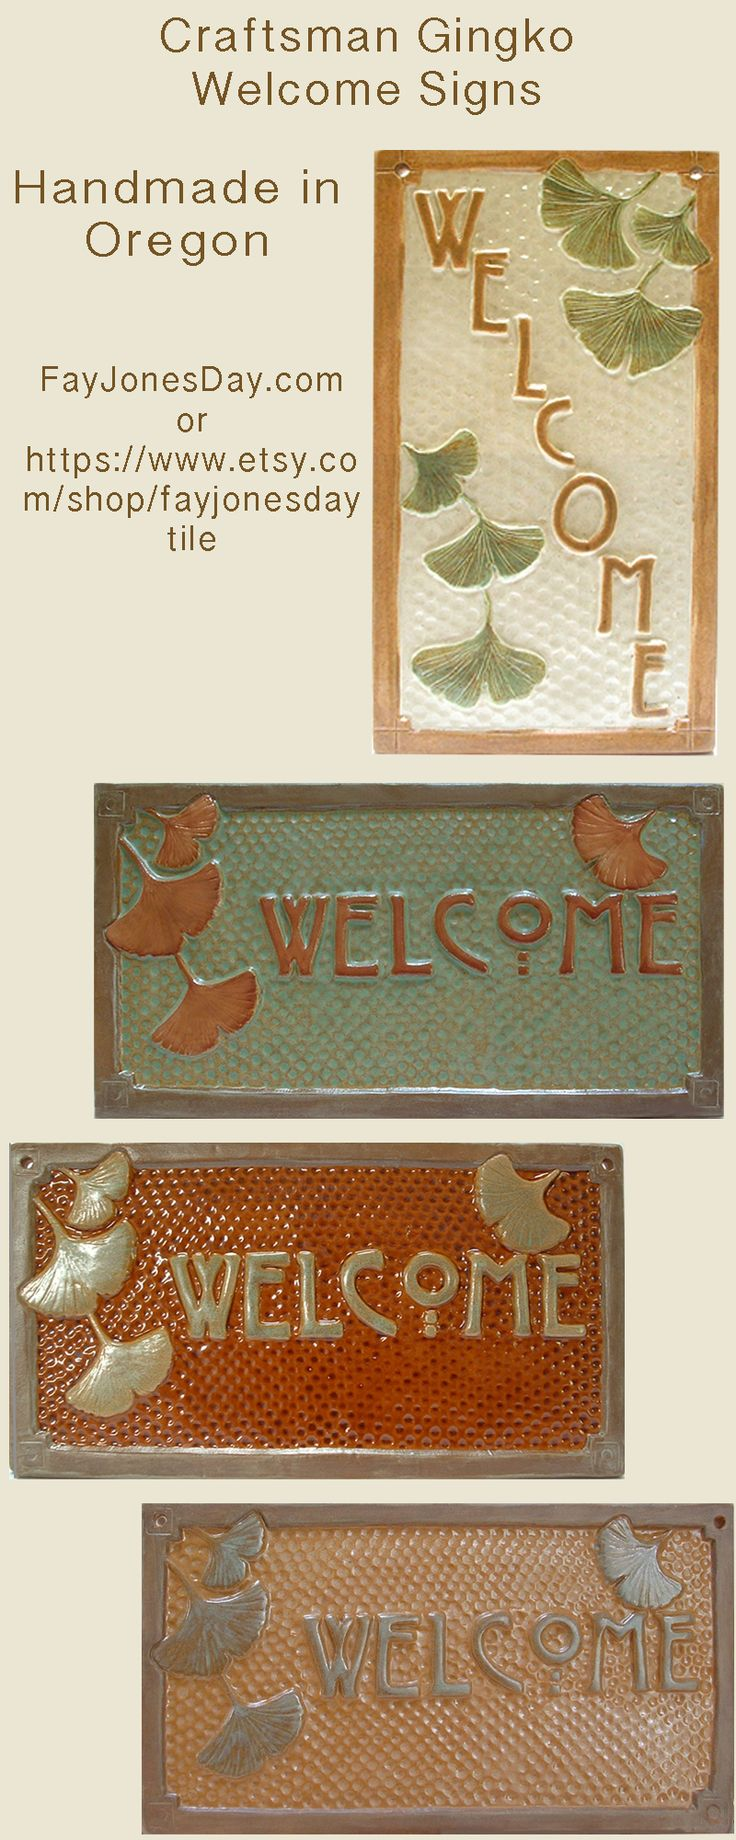 GIngko/Ginkgo Welcome signs, handmade in Oregon. Designed for your Craftsman Bungalow.